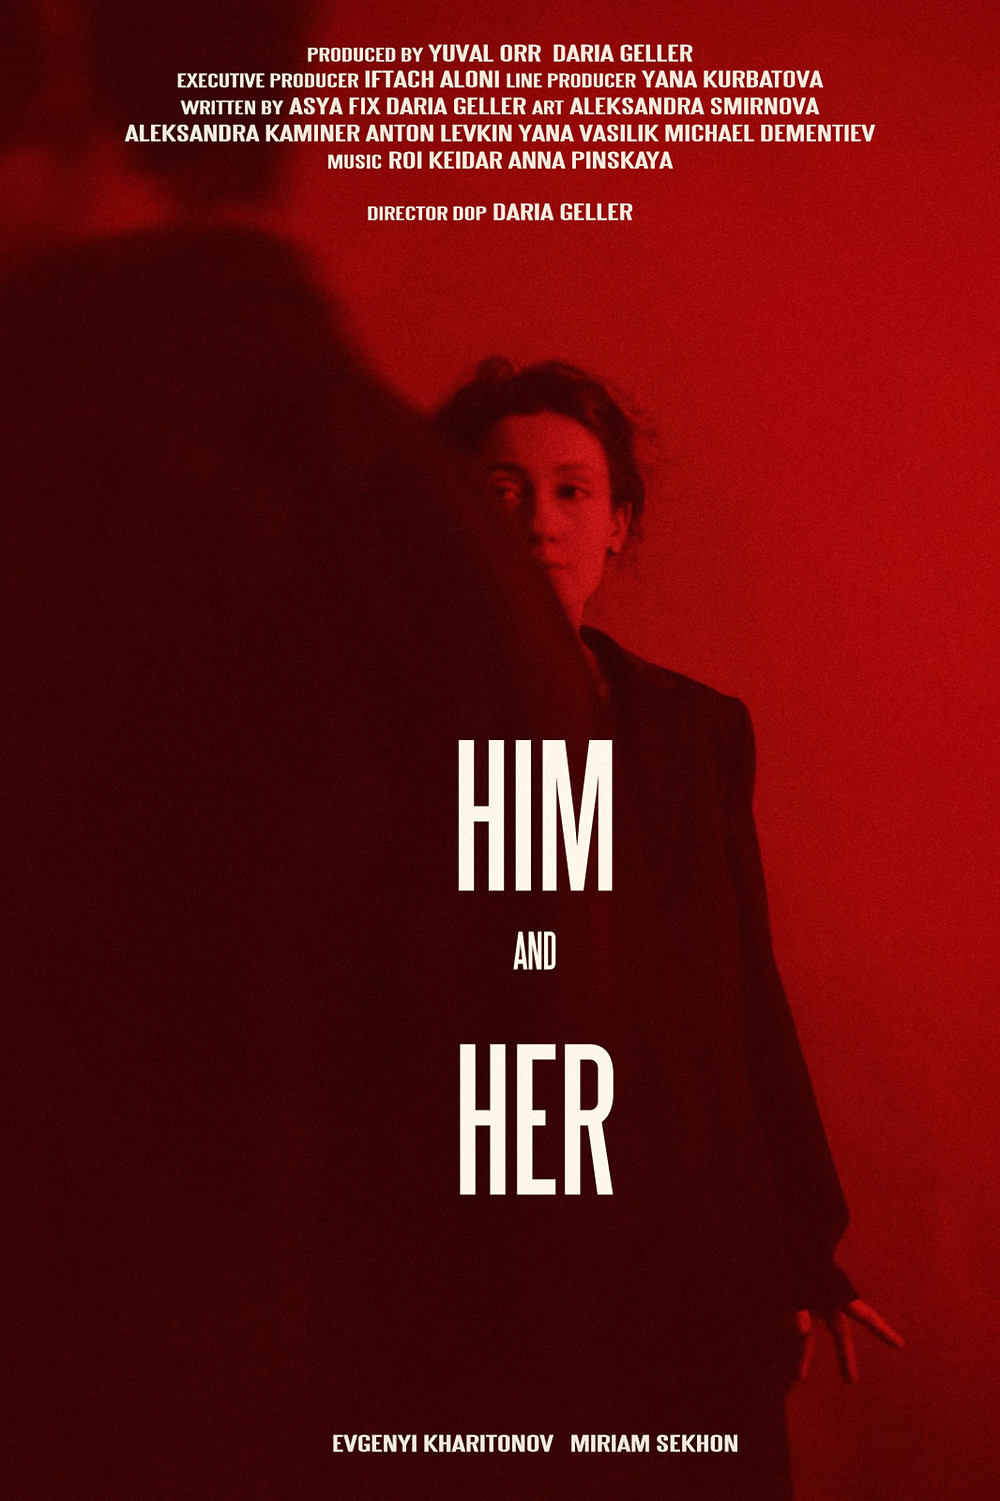 A red poster, with one figure to the left of the image in shadow as he looks off camera and a young woman in the centre watching him in intrigue and perhaps dislike.